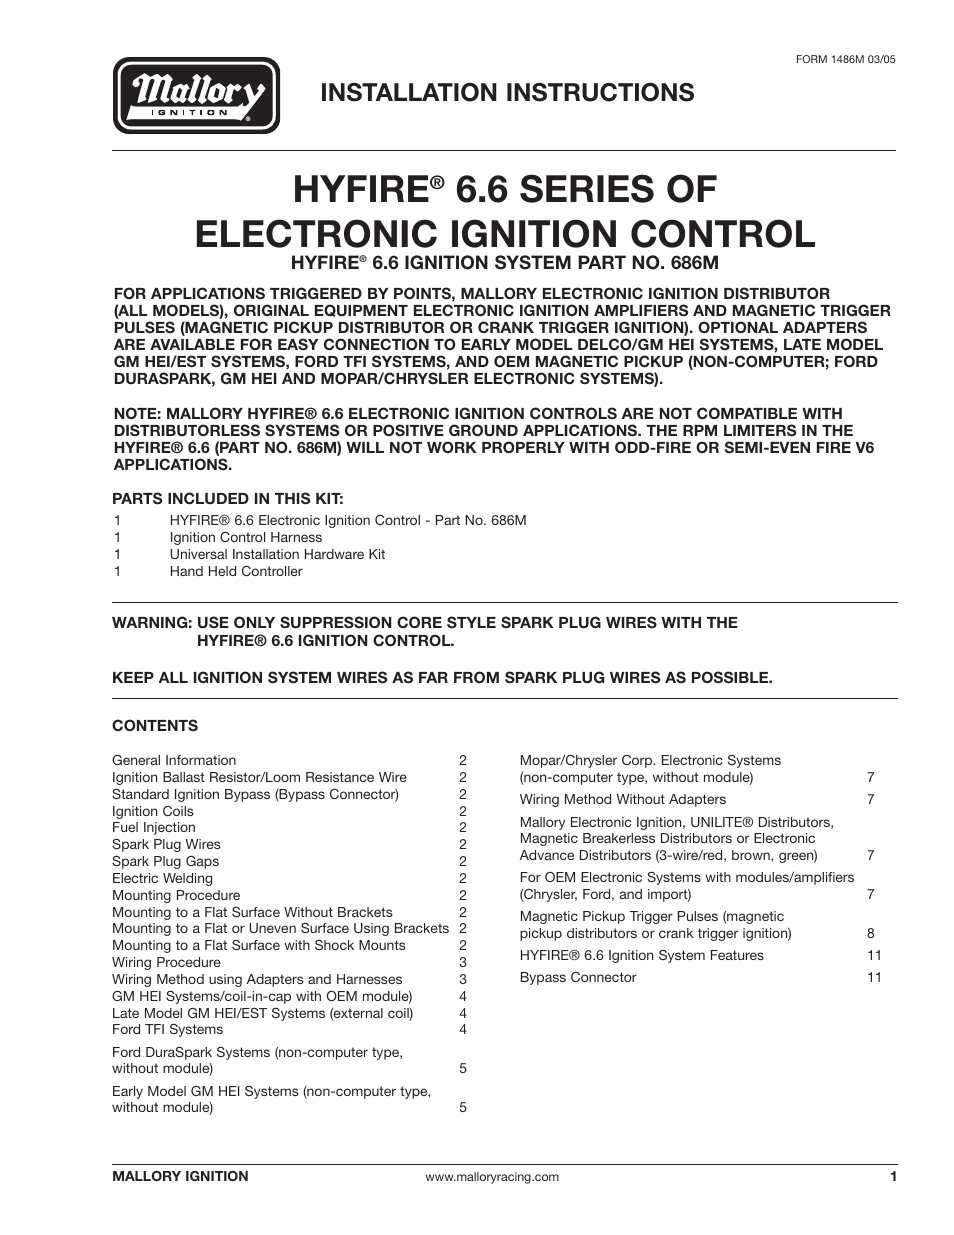 Mallory Ignition Mallory HYFIRE 6.6 SERIES OF ELECTRONIC IGNITION ...